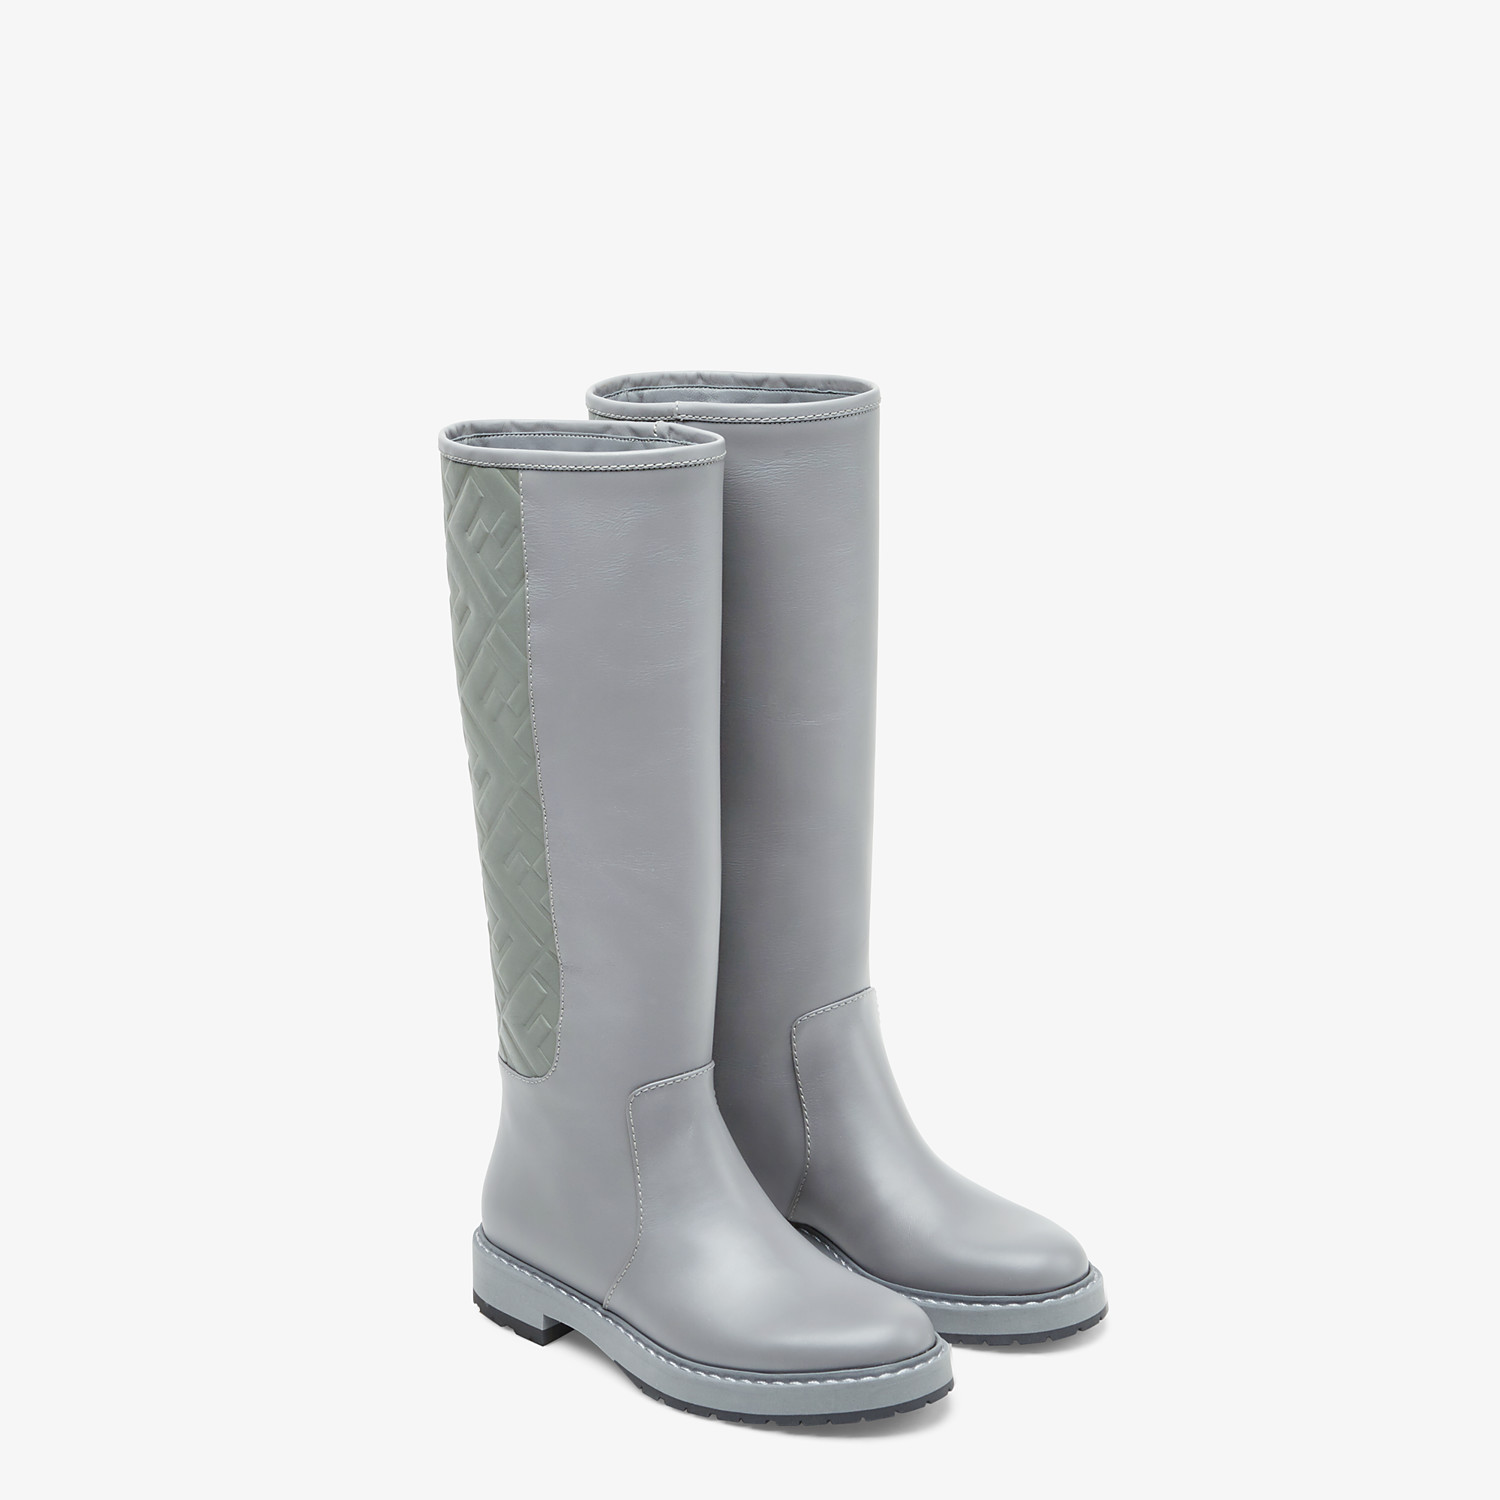 FENDI BOOTS - Grey leather boots - view 4 detail